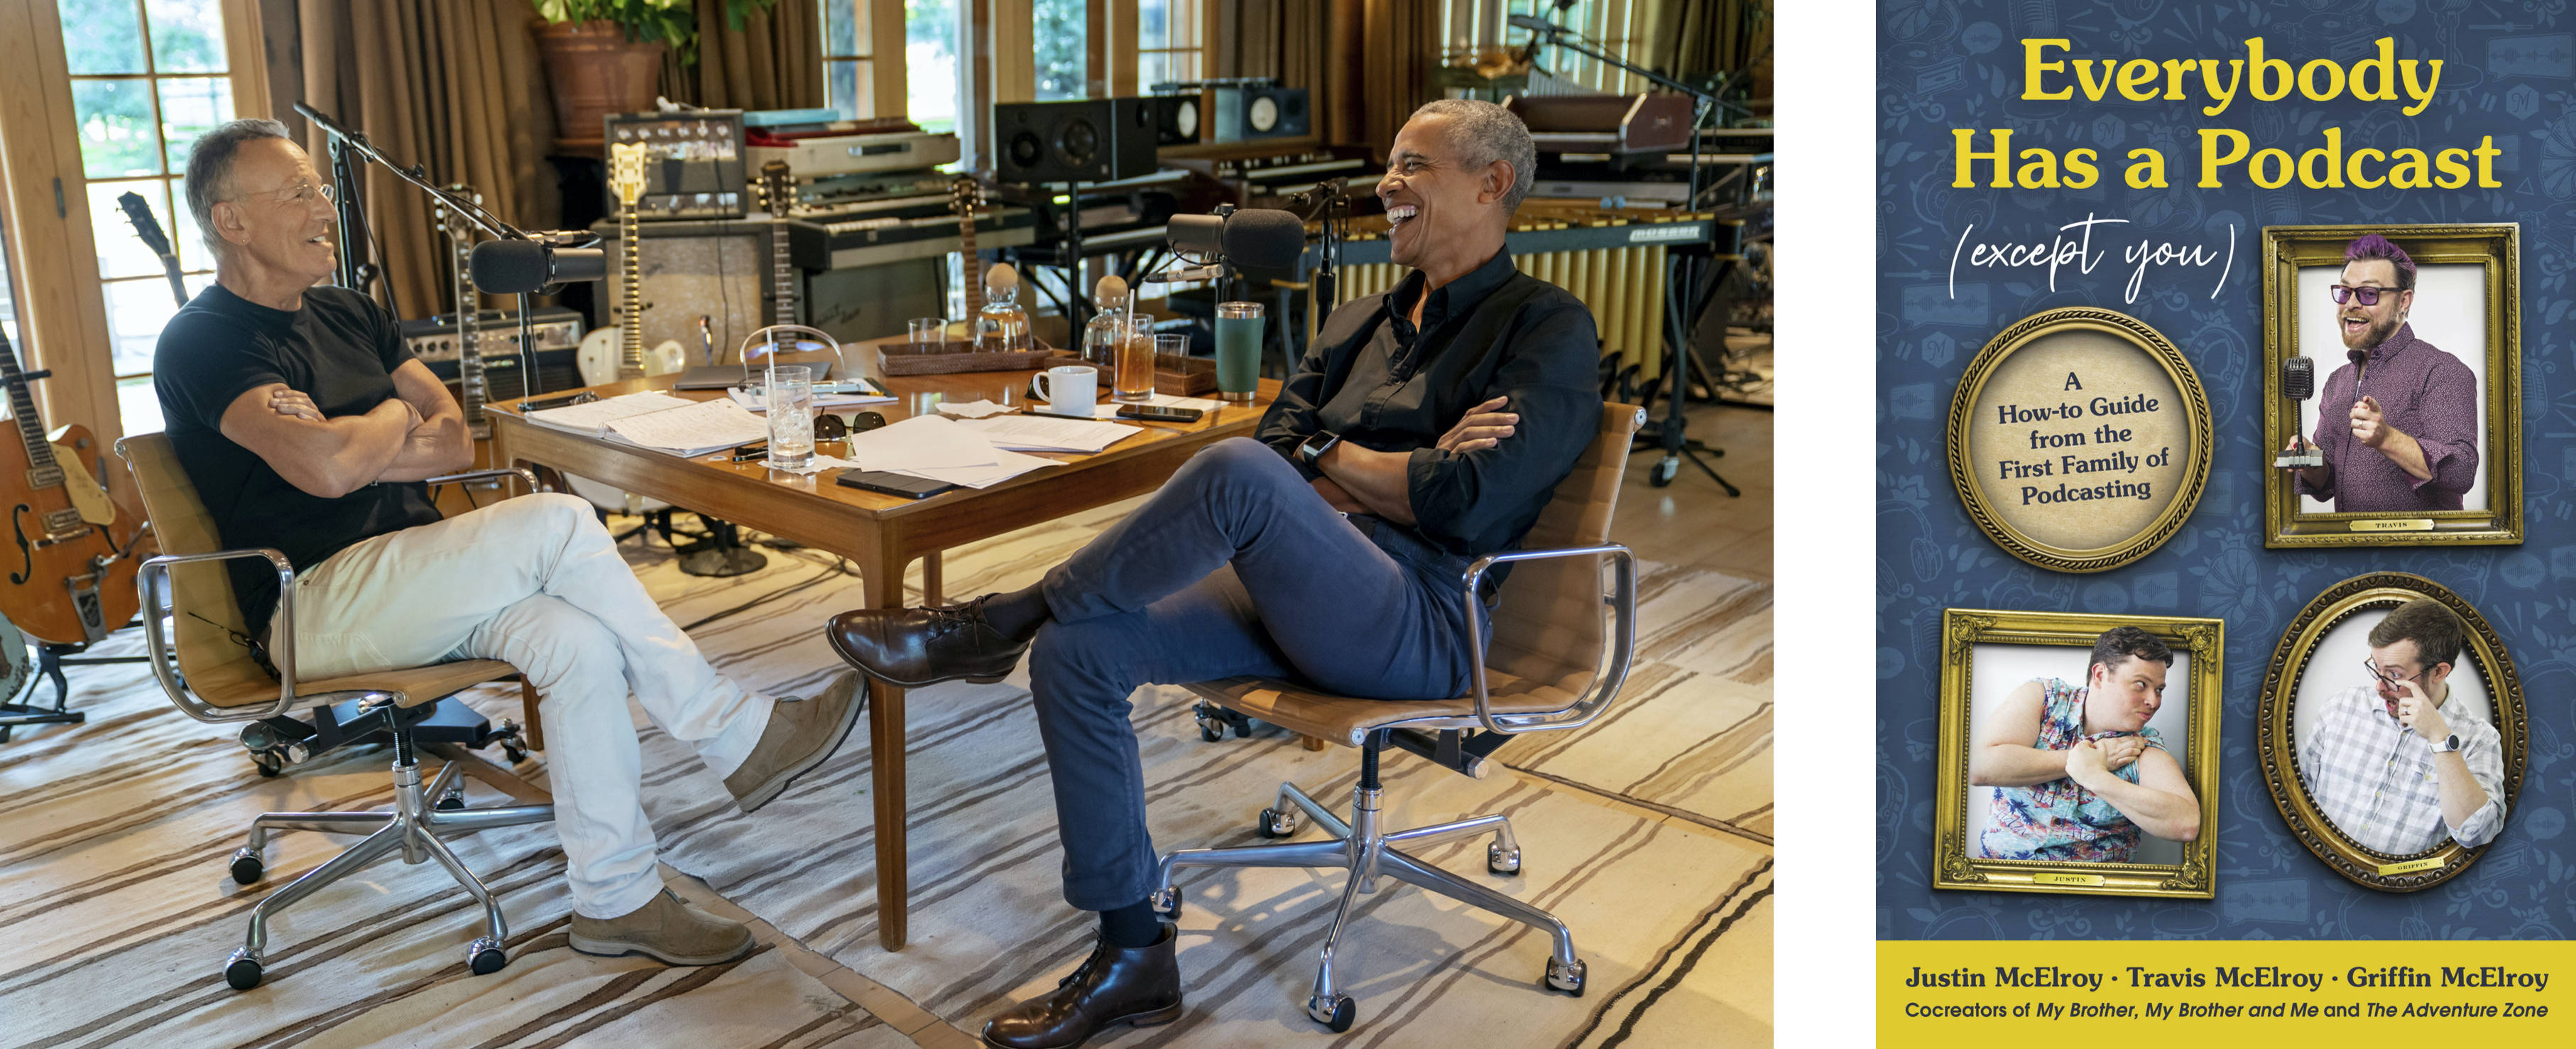 Bruce Springsteen and Barack Obama record their podcast for Spotify. (Photo by Rob DeMartin/Spotify via AP); Harper Perennial